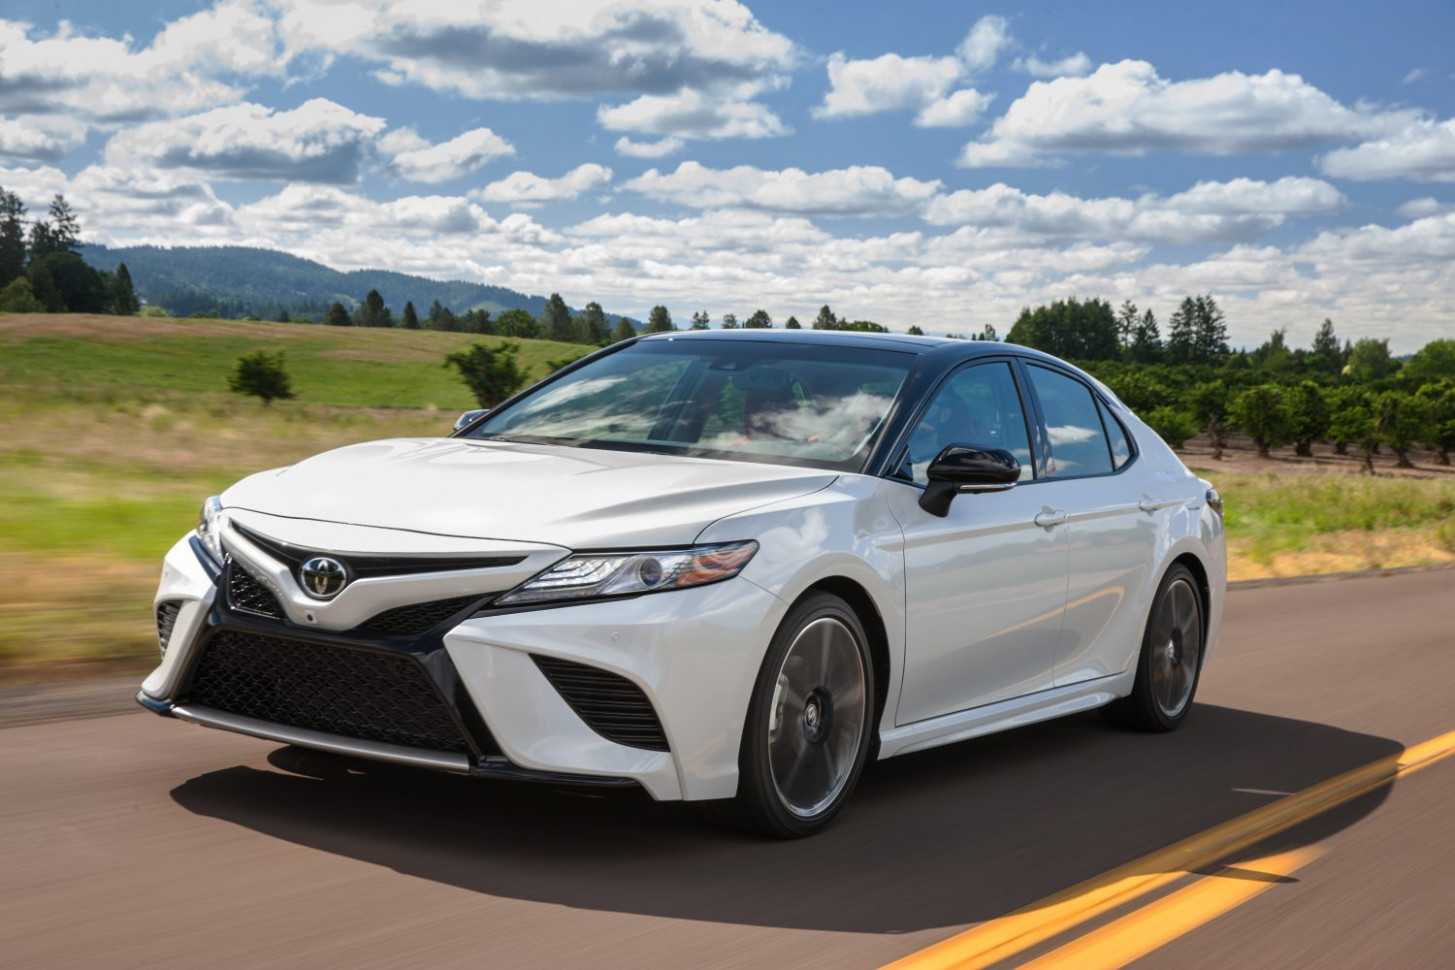 8 Toyota Camry Review, Ratings, Specs, Prices, and Photos - The ...